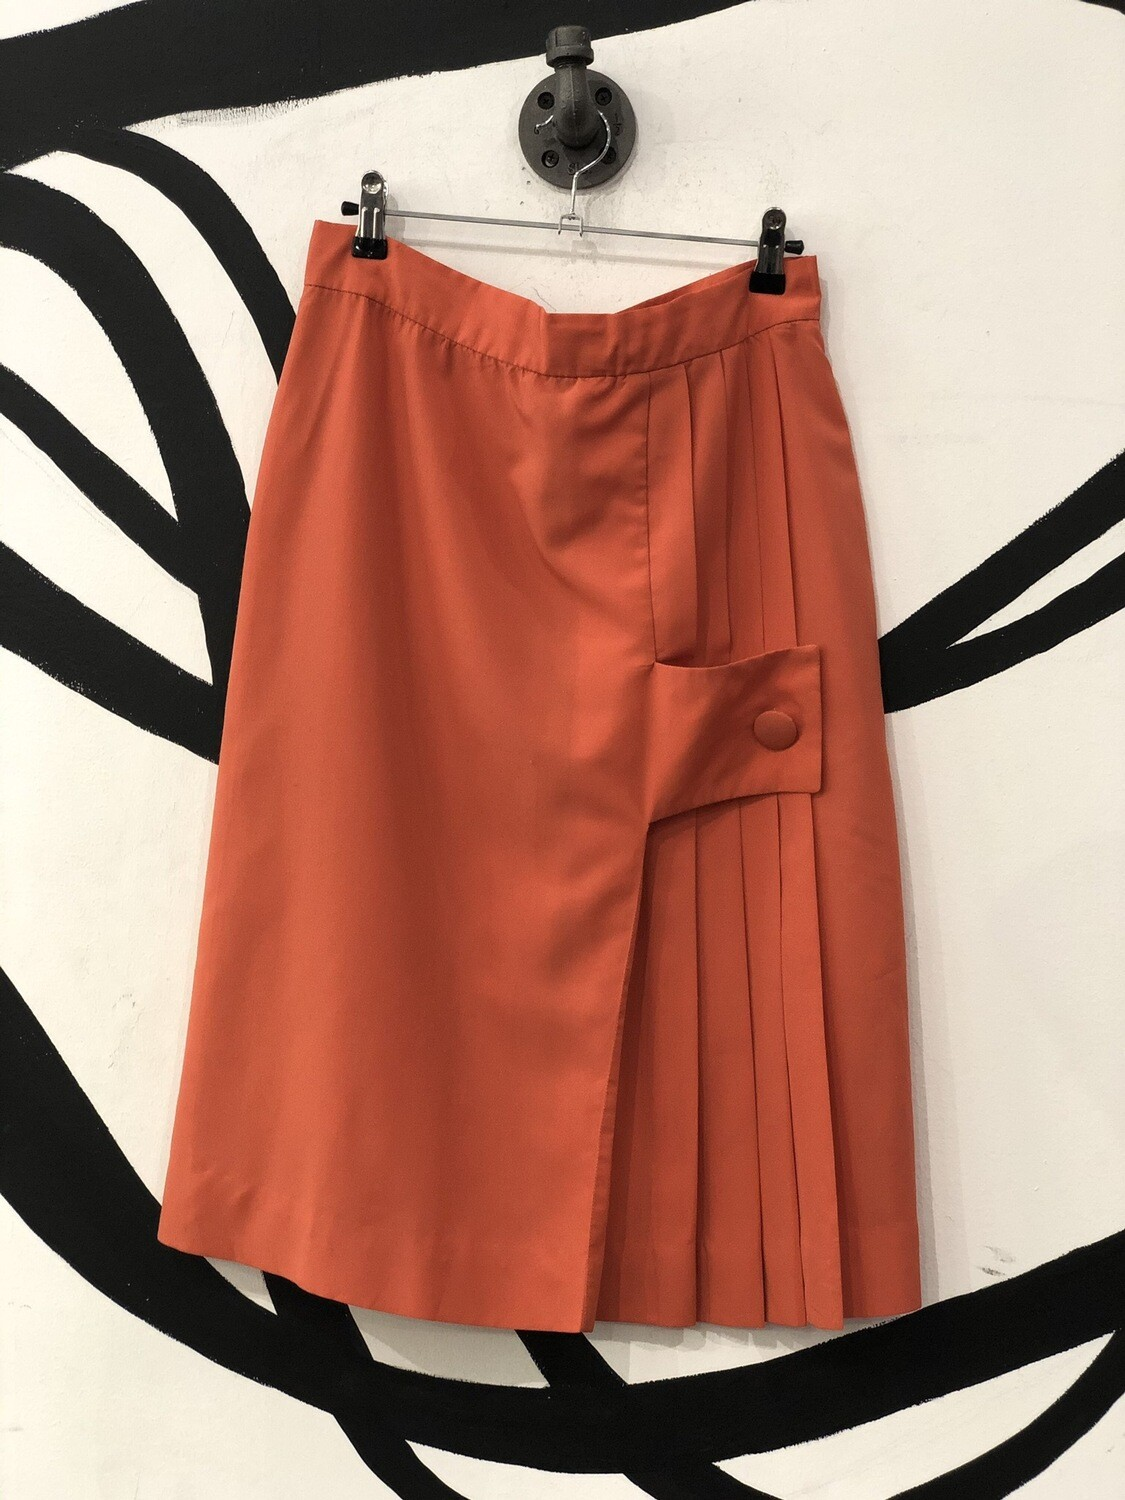 Tangerine Pleated Single Button-Over Skirt Size M